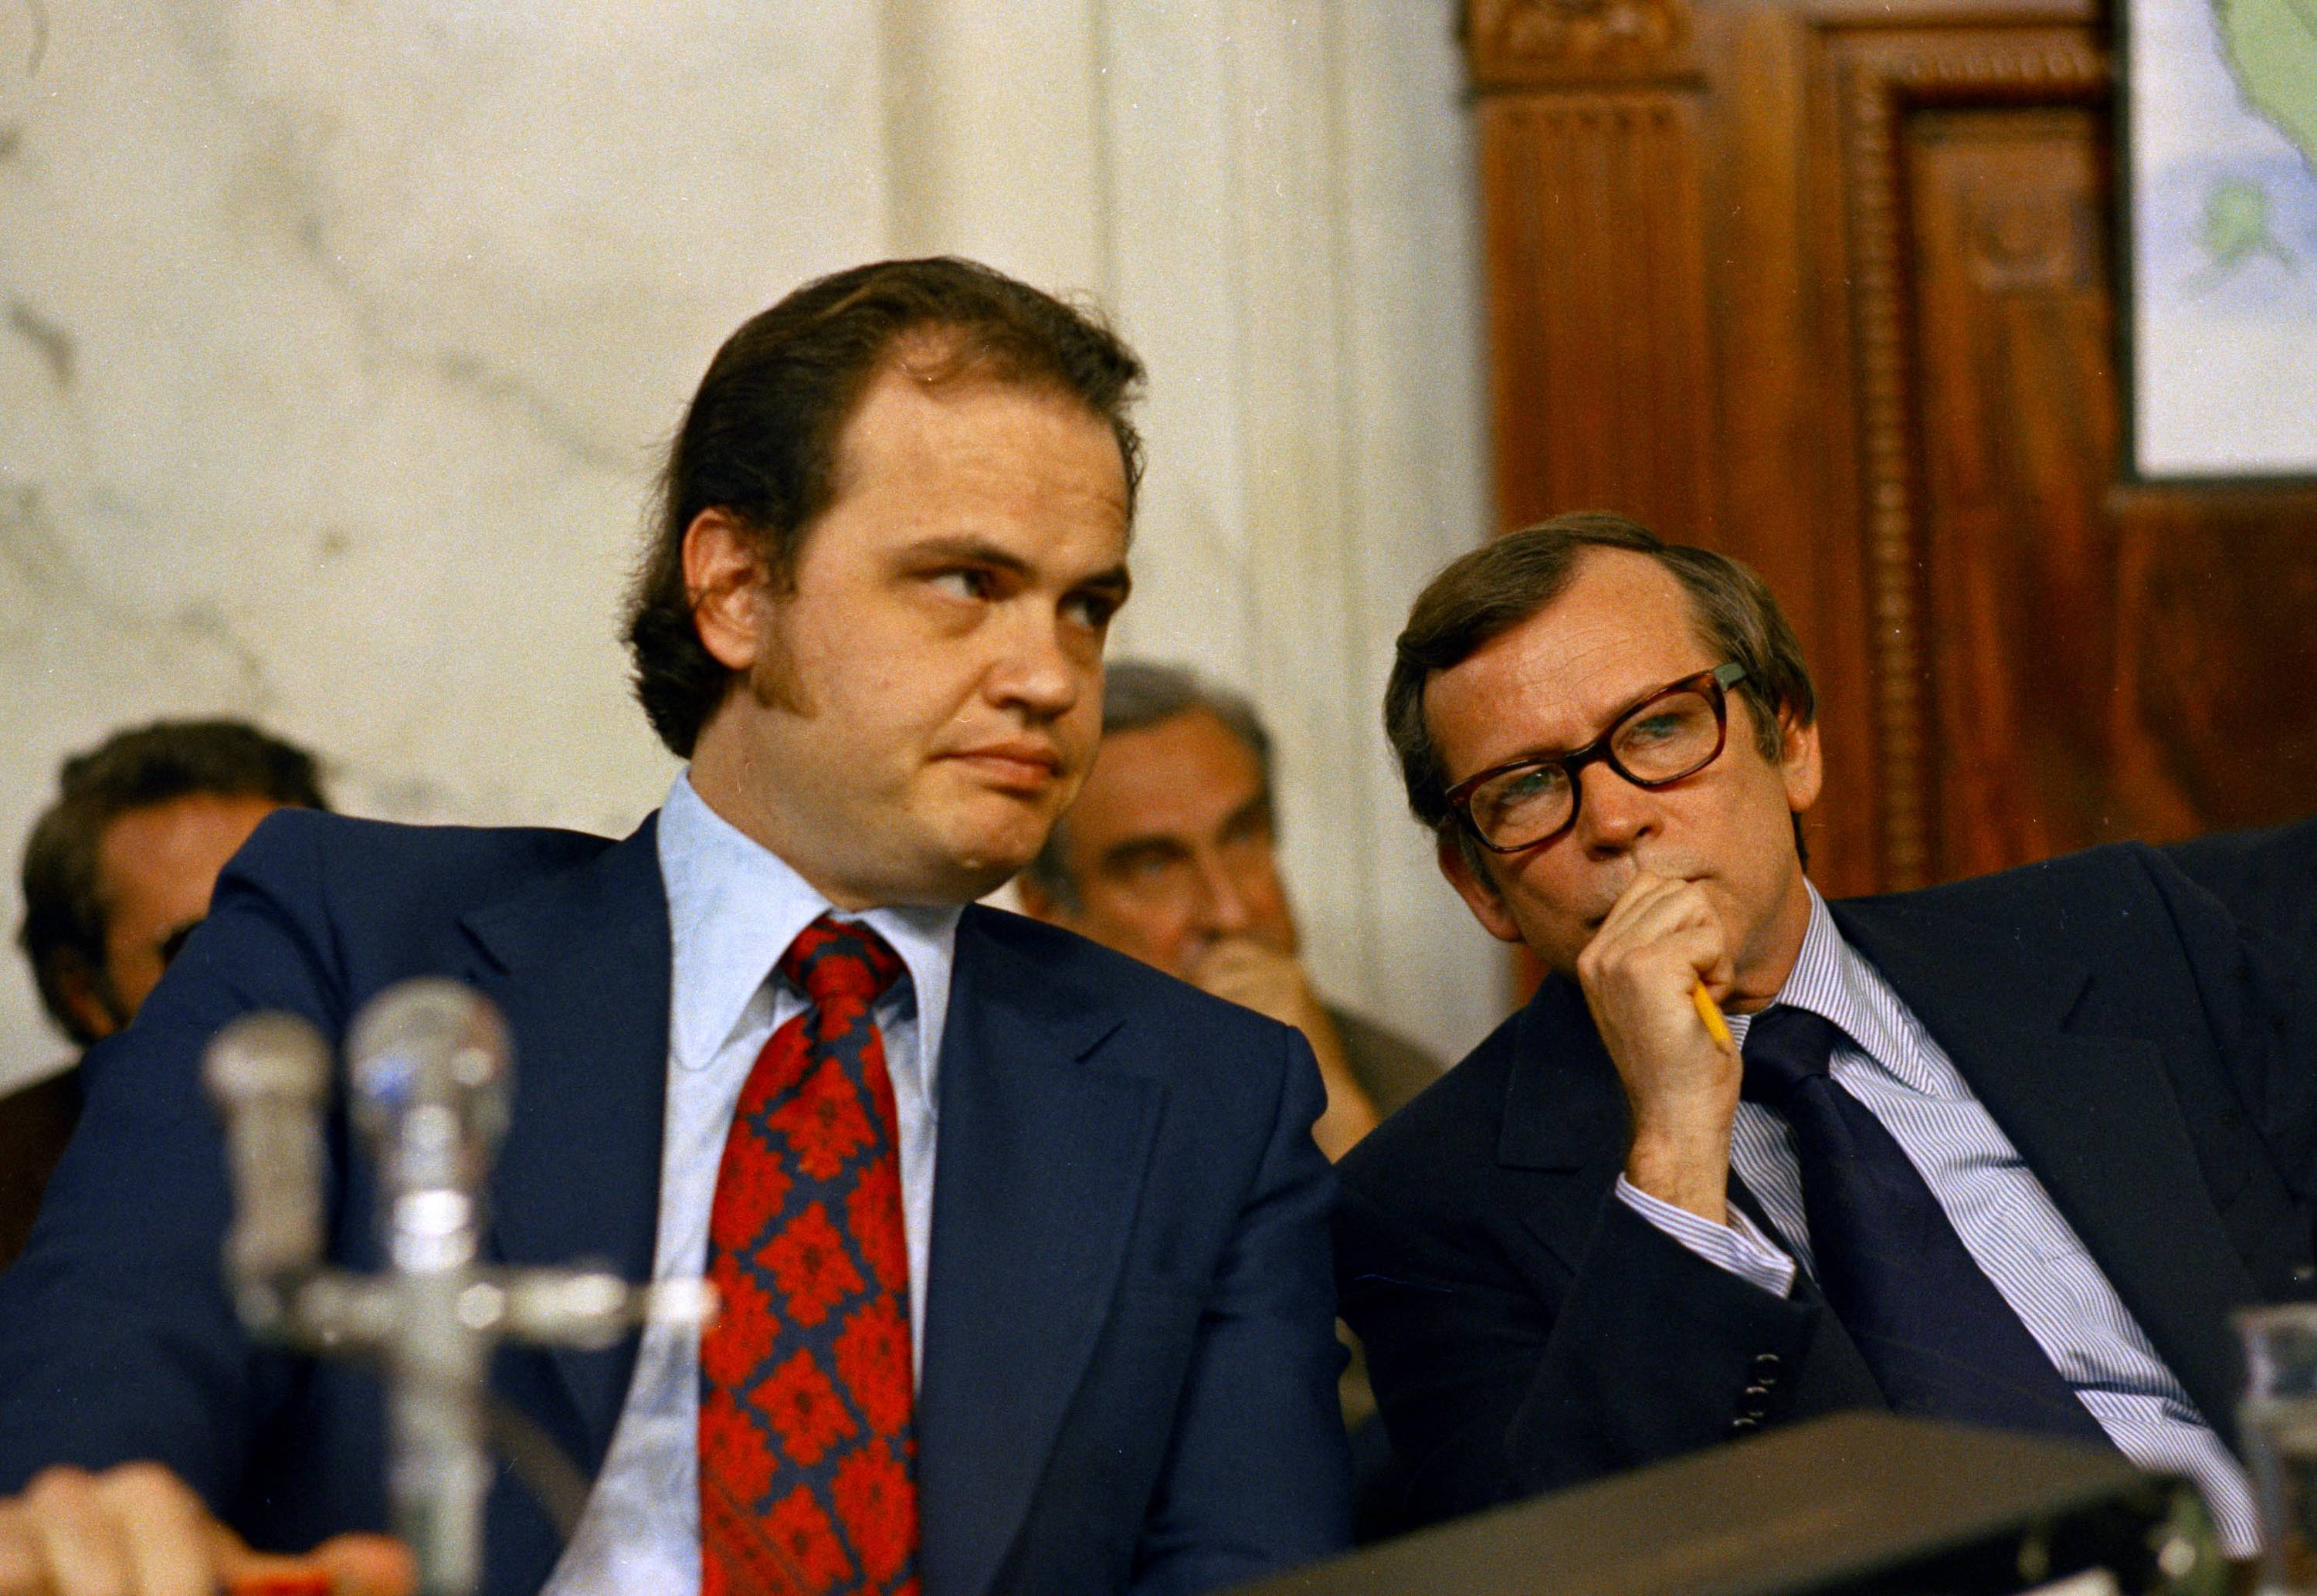 Sen. Fred D. Thompson, Chief Minority Counsel of the Senate Watergate Committee, left, talking with Sen. Howard Baker, a Tennessee Republican, during the Watergate hearings on Capitol Hill in Washington. Baker, who asked what President Richard Nixon knew about Watergate, has died. He was 88. Baker, a Republican, served 18 years in the Senate. He earned the respect of Republicans and Democrats alike and rose to the post of majority leader. He served as White House chief of staff at the end of the Reagan administration and was U.S. ambassador to Japan during President George W. Bush's first term.